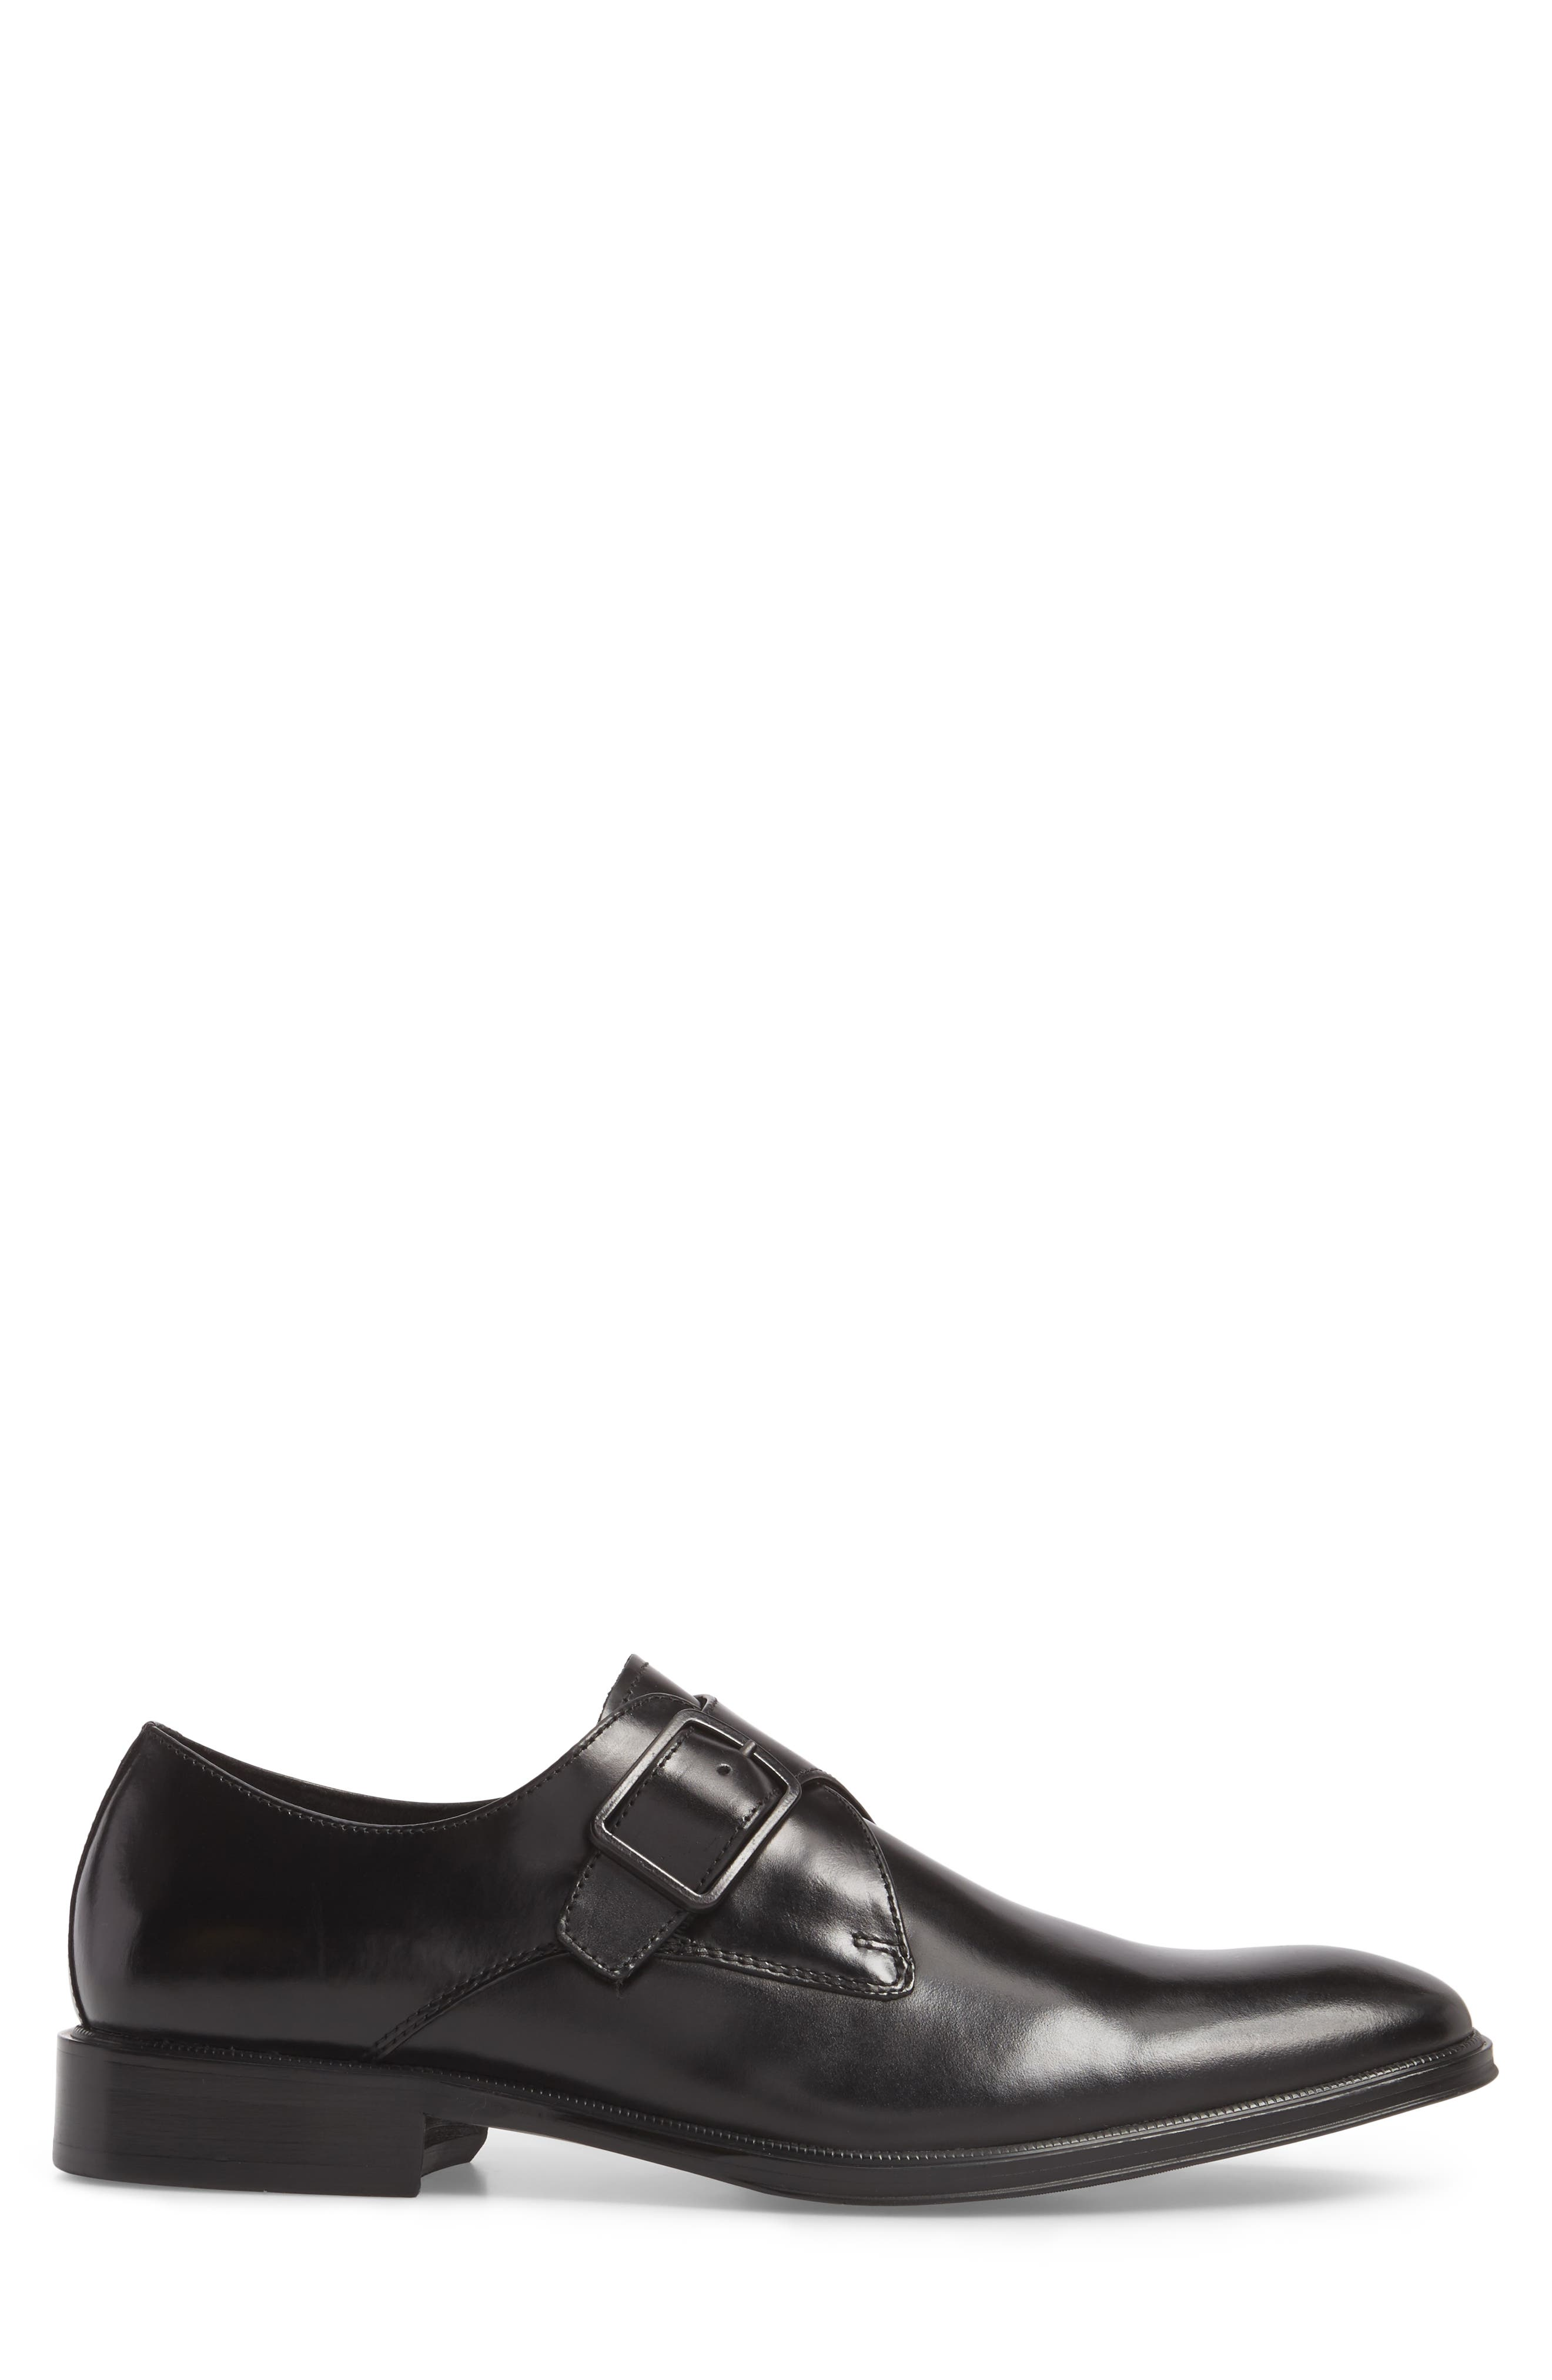 Tully Single Buckle Monk Shoe,                             Alternate thumbnail 3, color,                             Black Leather